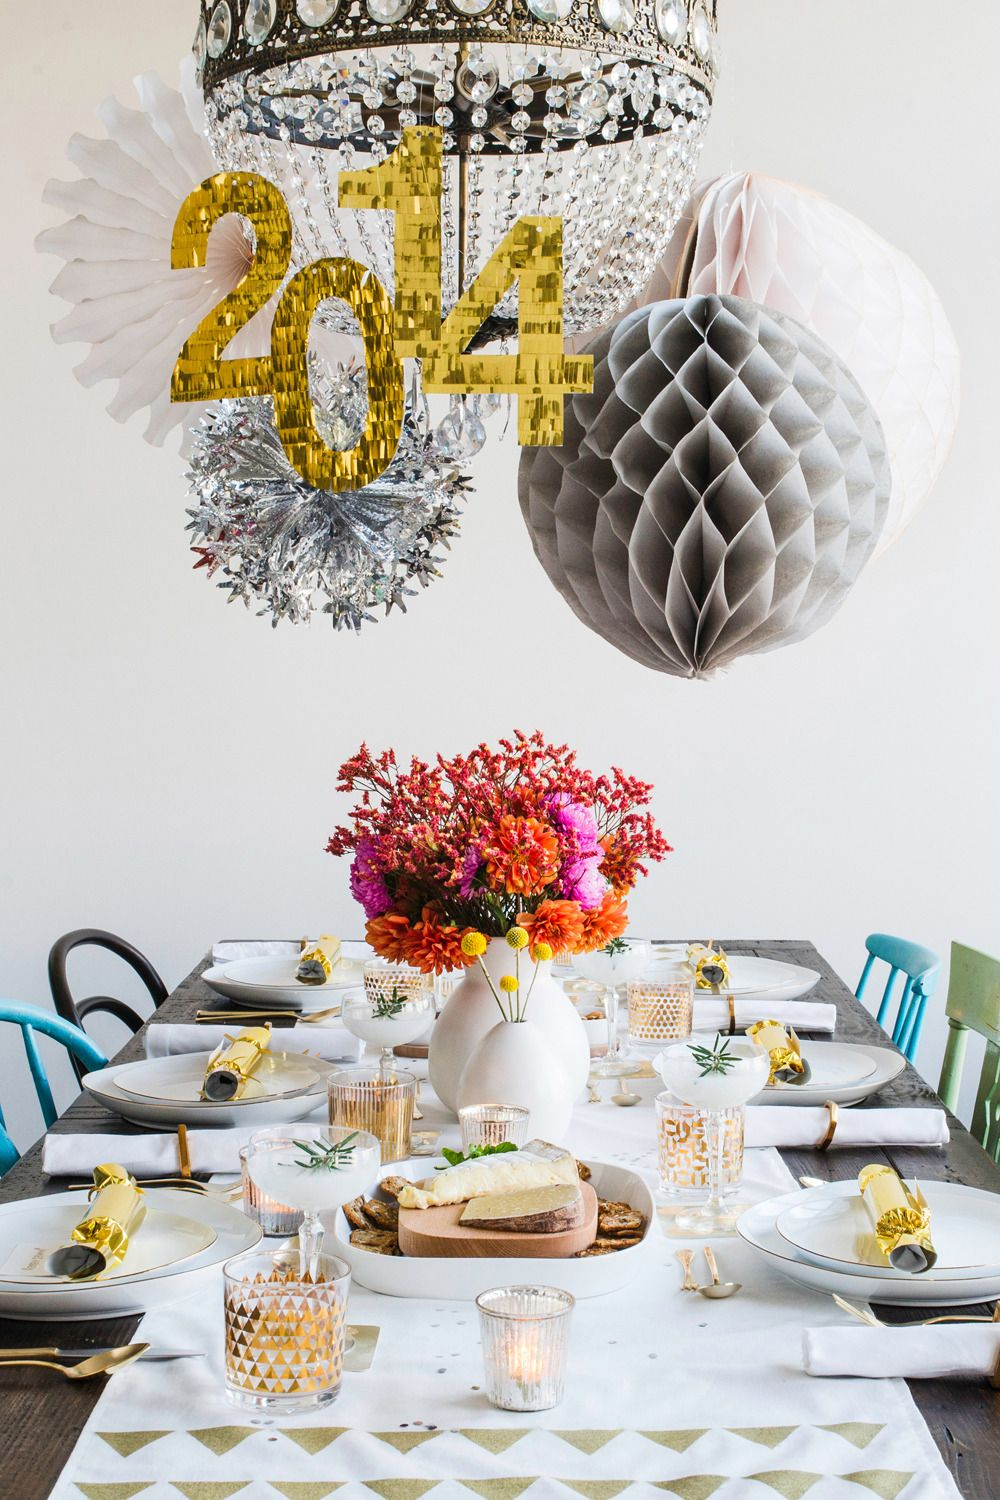 A Shiny New Years Party | Parties & Celebrations | Pinterest | 30th ...